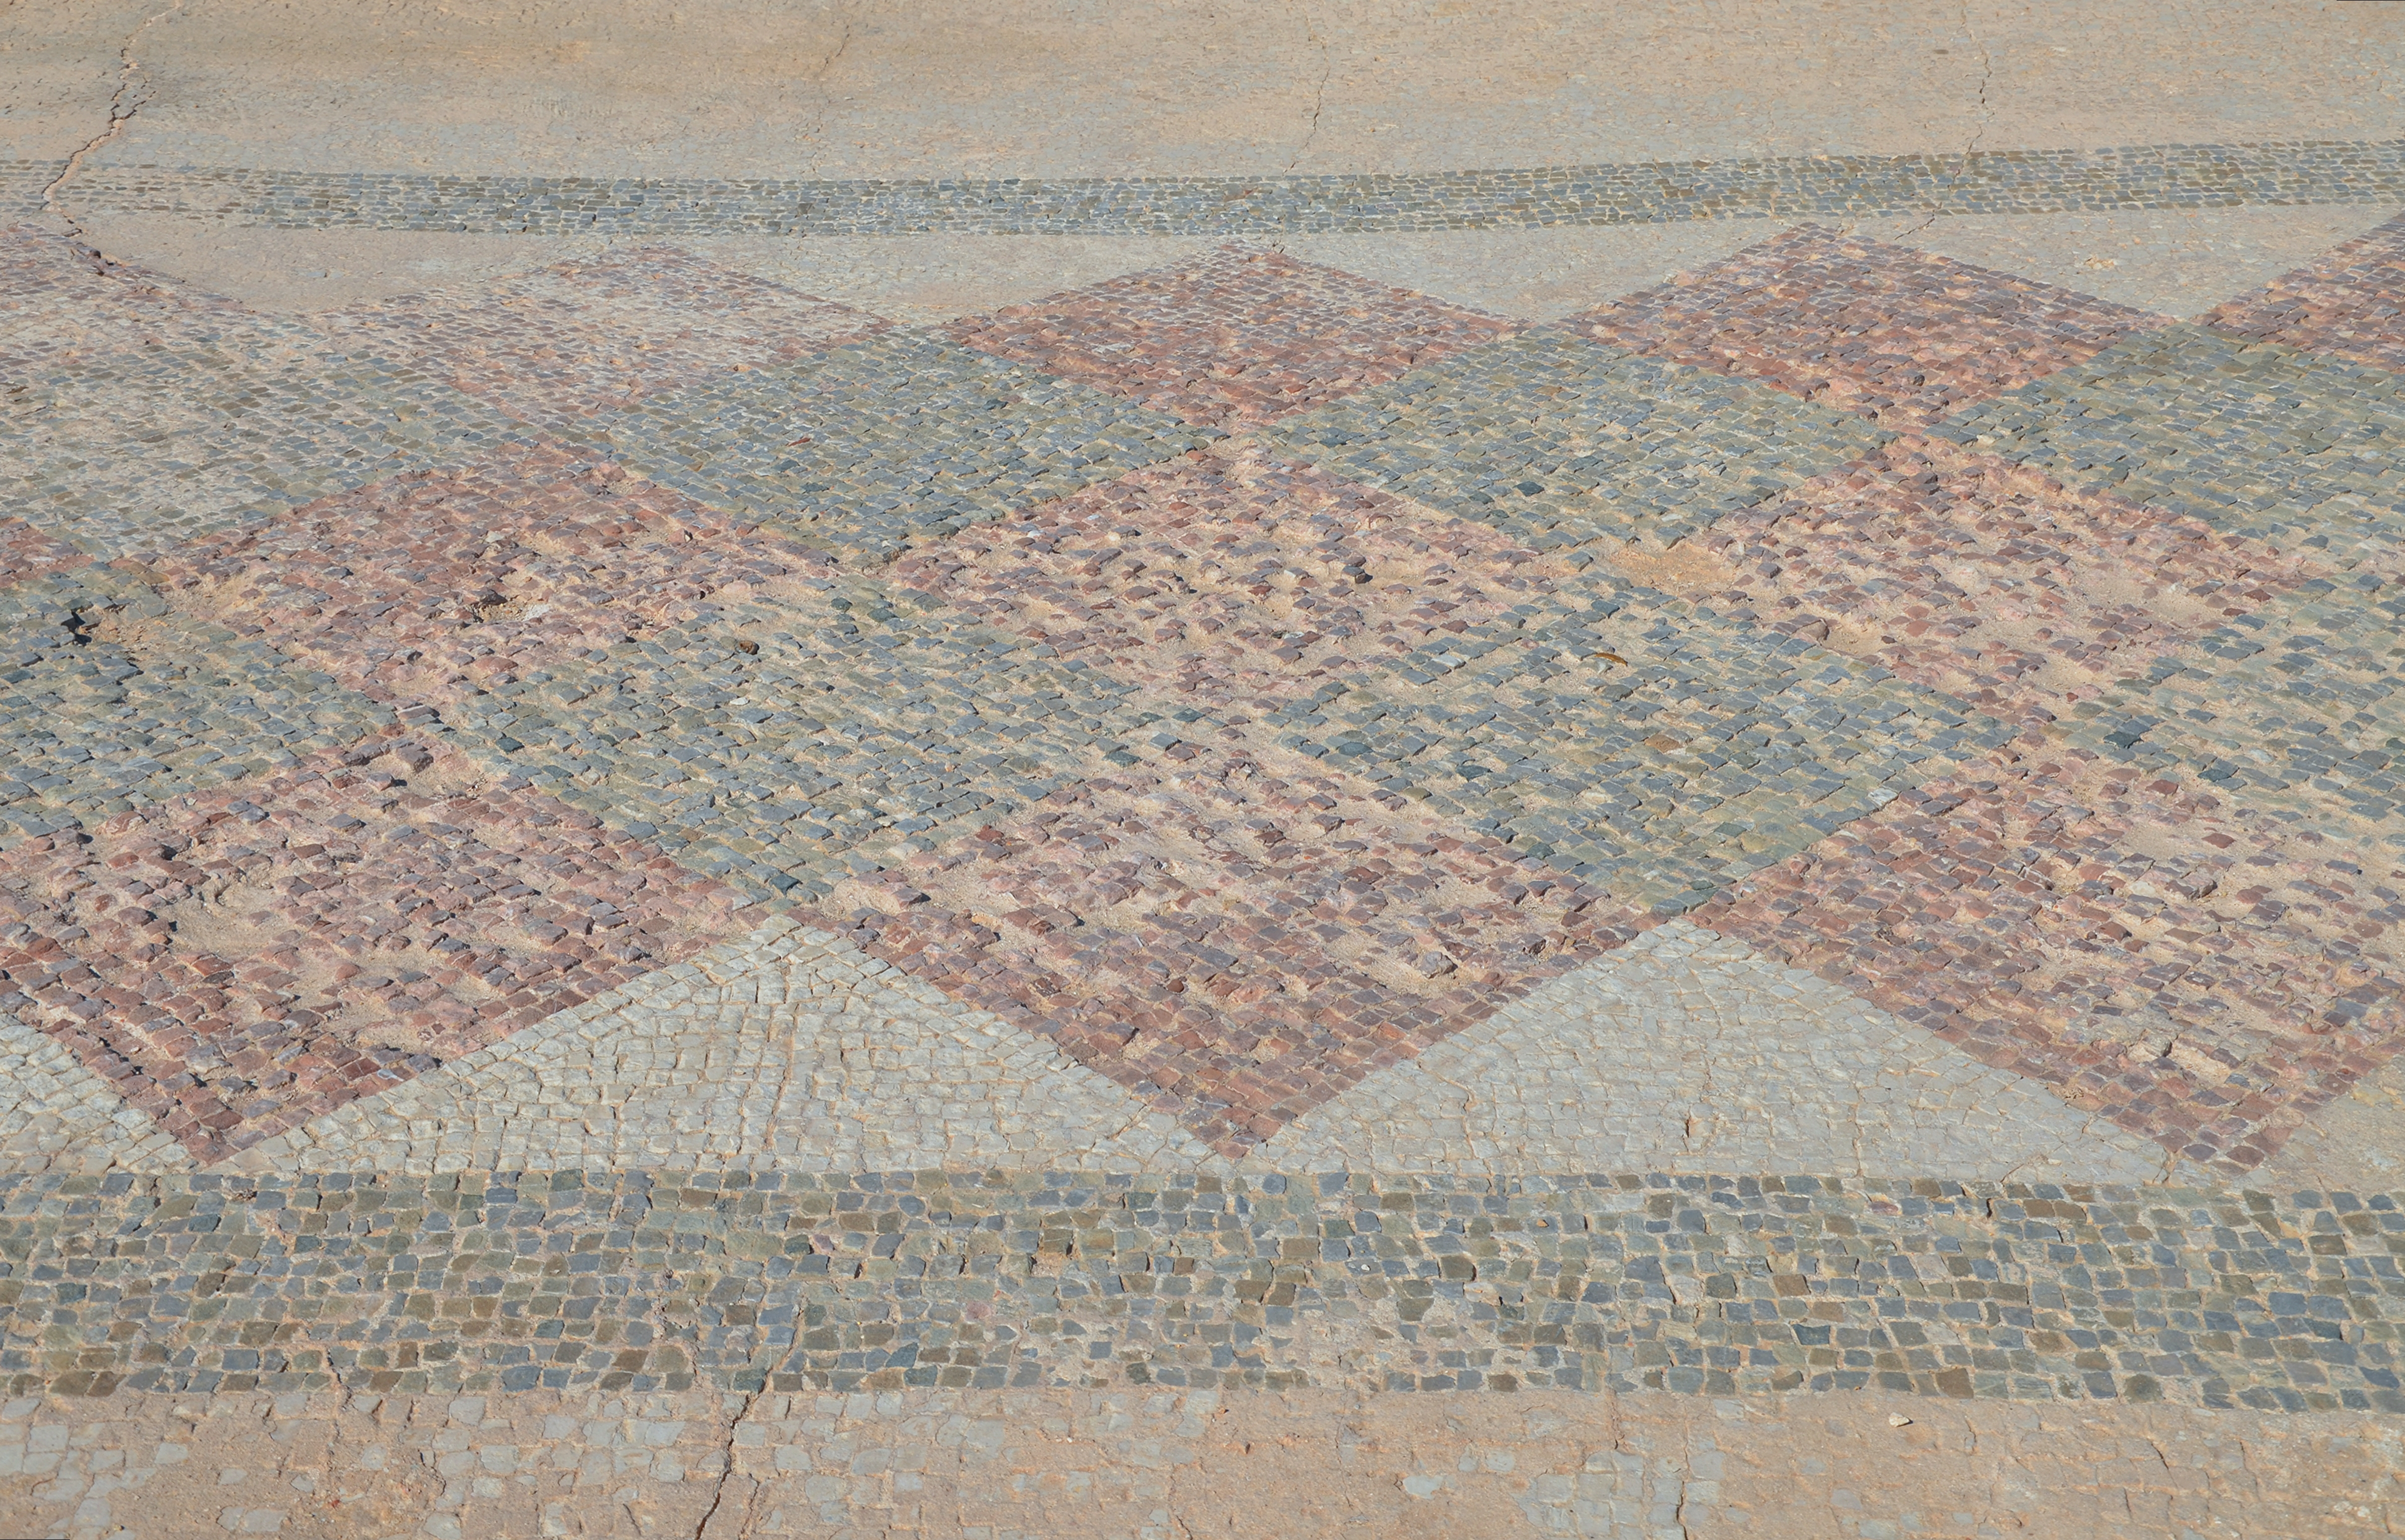 filethe house of theseus mosaic with geometric pattern west wing paphos - Mosaic Tile House 2015